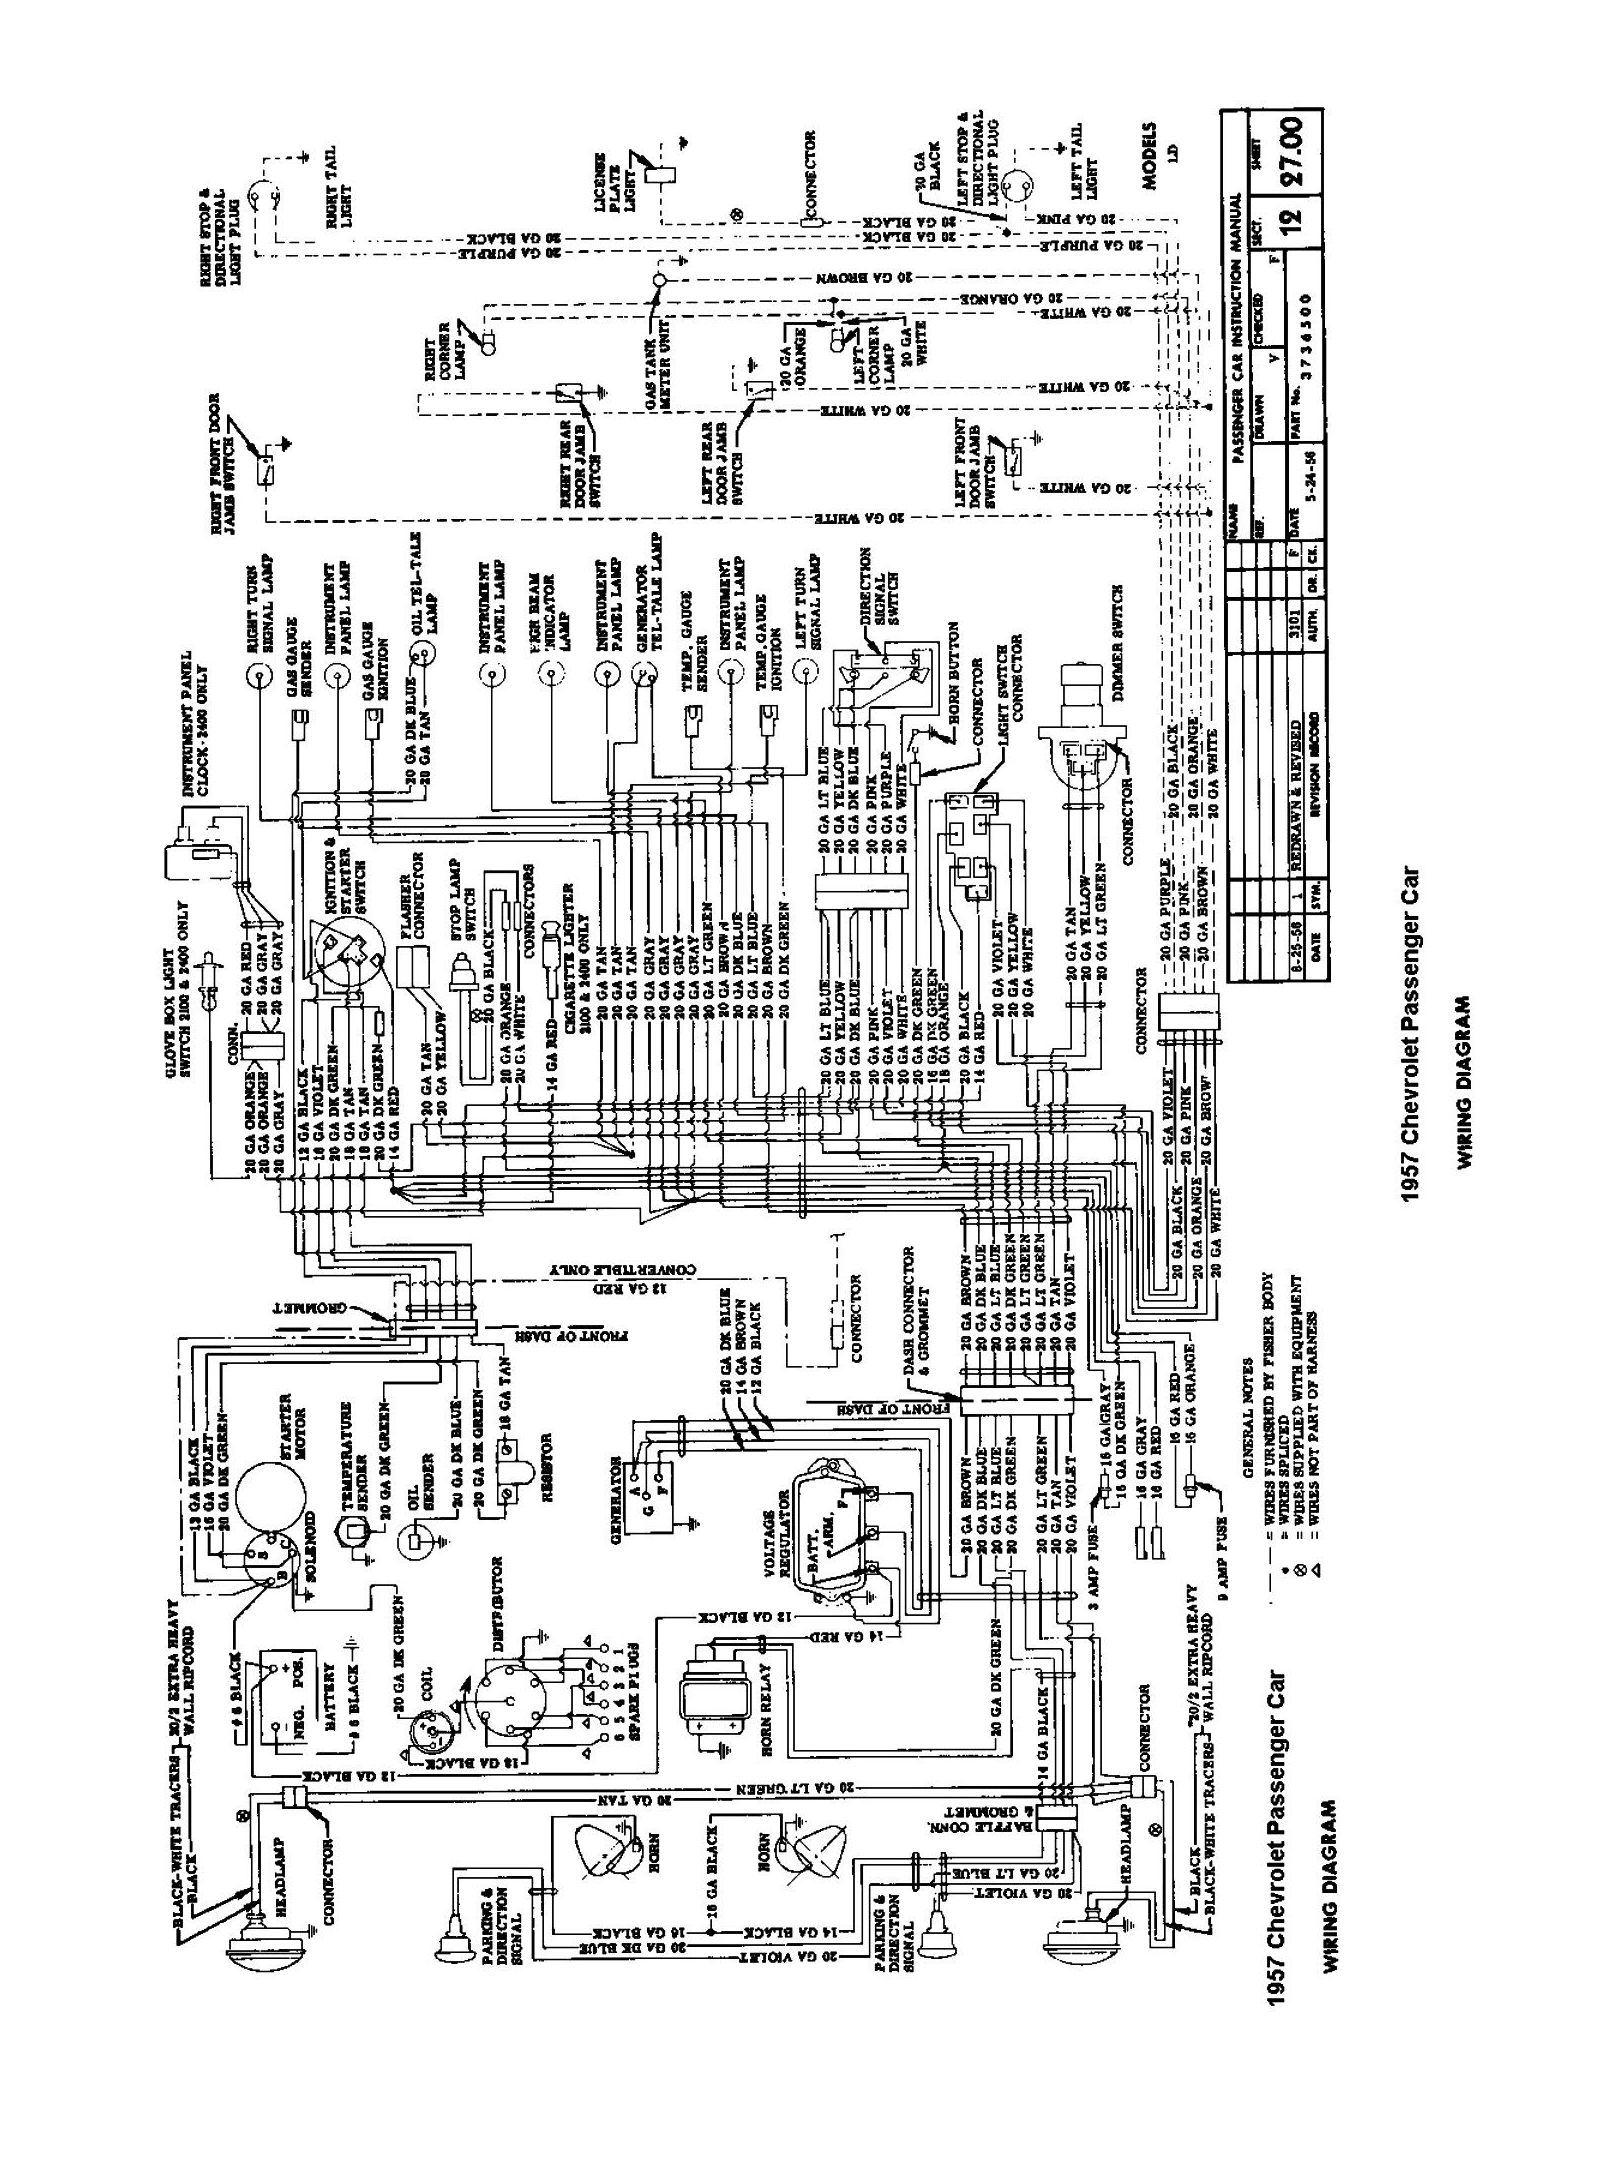 wiring diagram for 1957 chevrolet bel air wiring diagram paper 57 chevy wiring diagram 57 chevys [ 1600 x 2164 Pixel ]